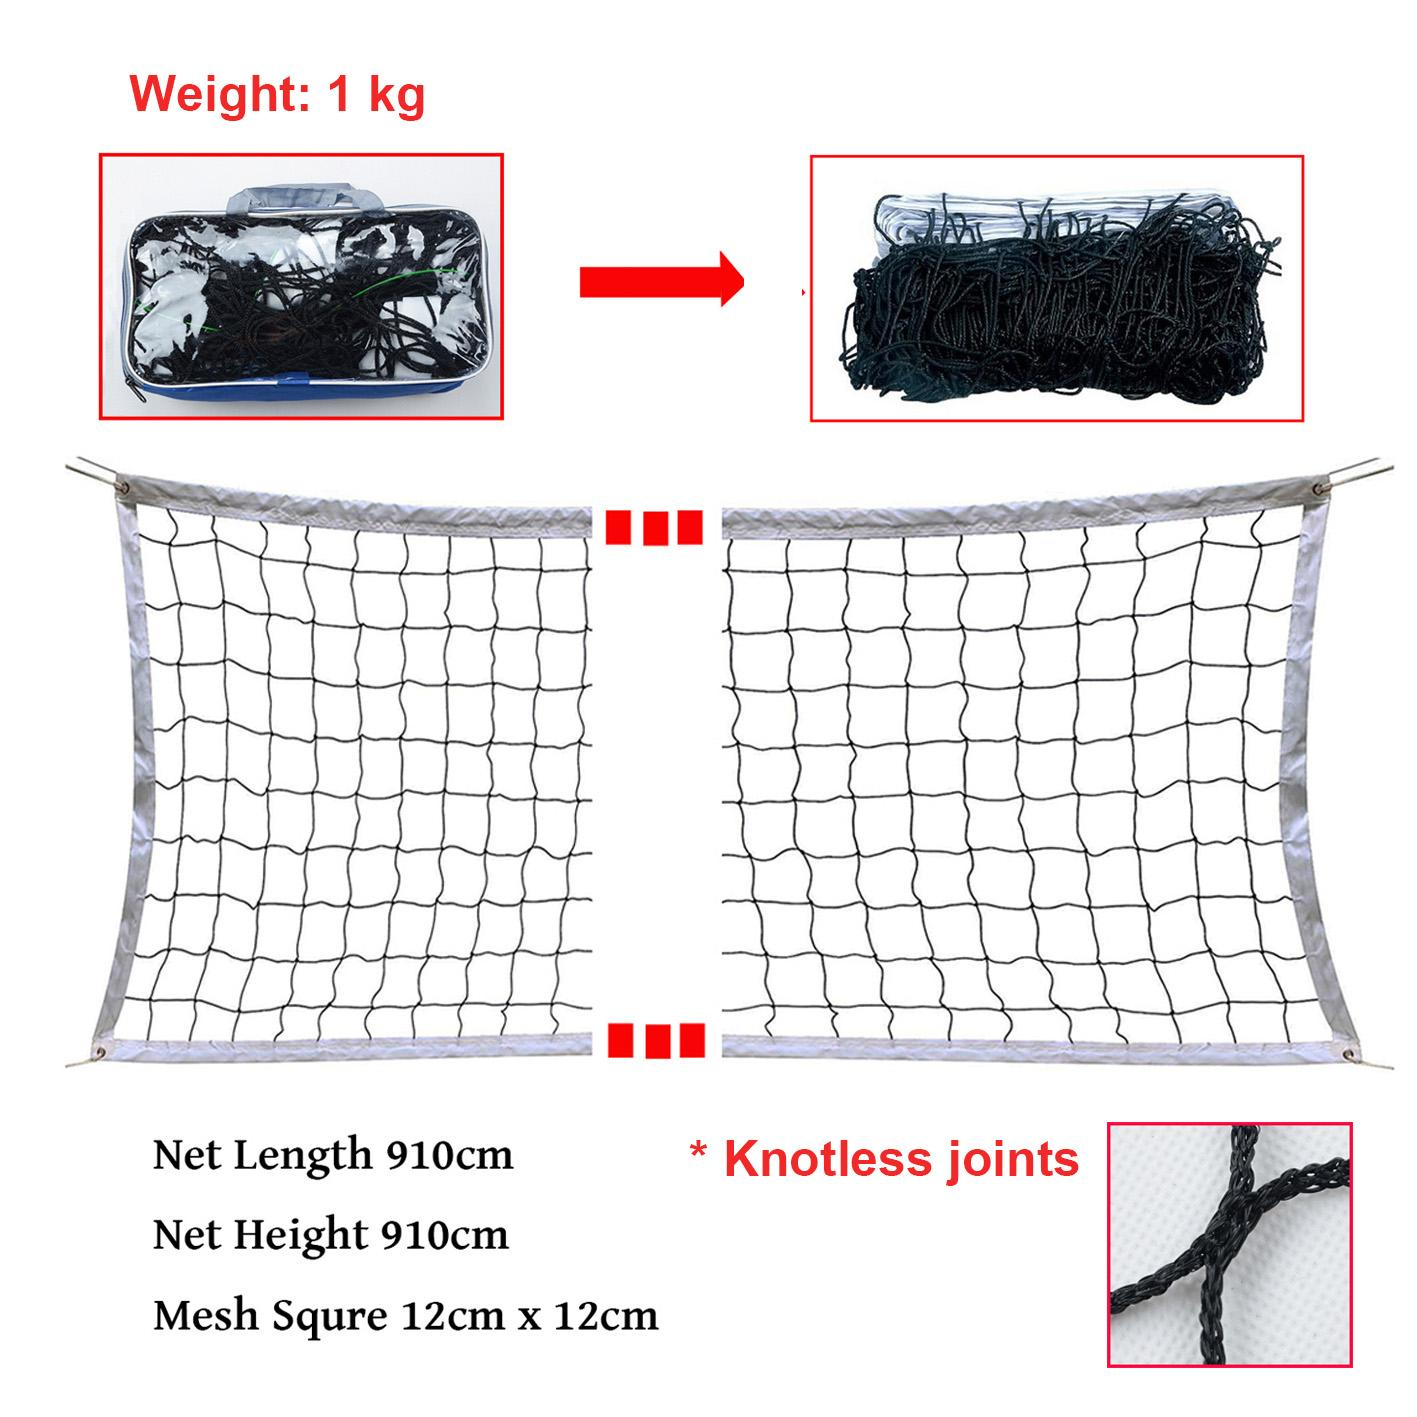 Volleyball Nets For Sale Sets Online Brands Prices Net Bola Voli Mikasa Volley Reviews In Philippines